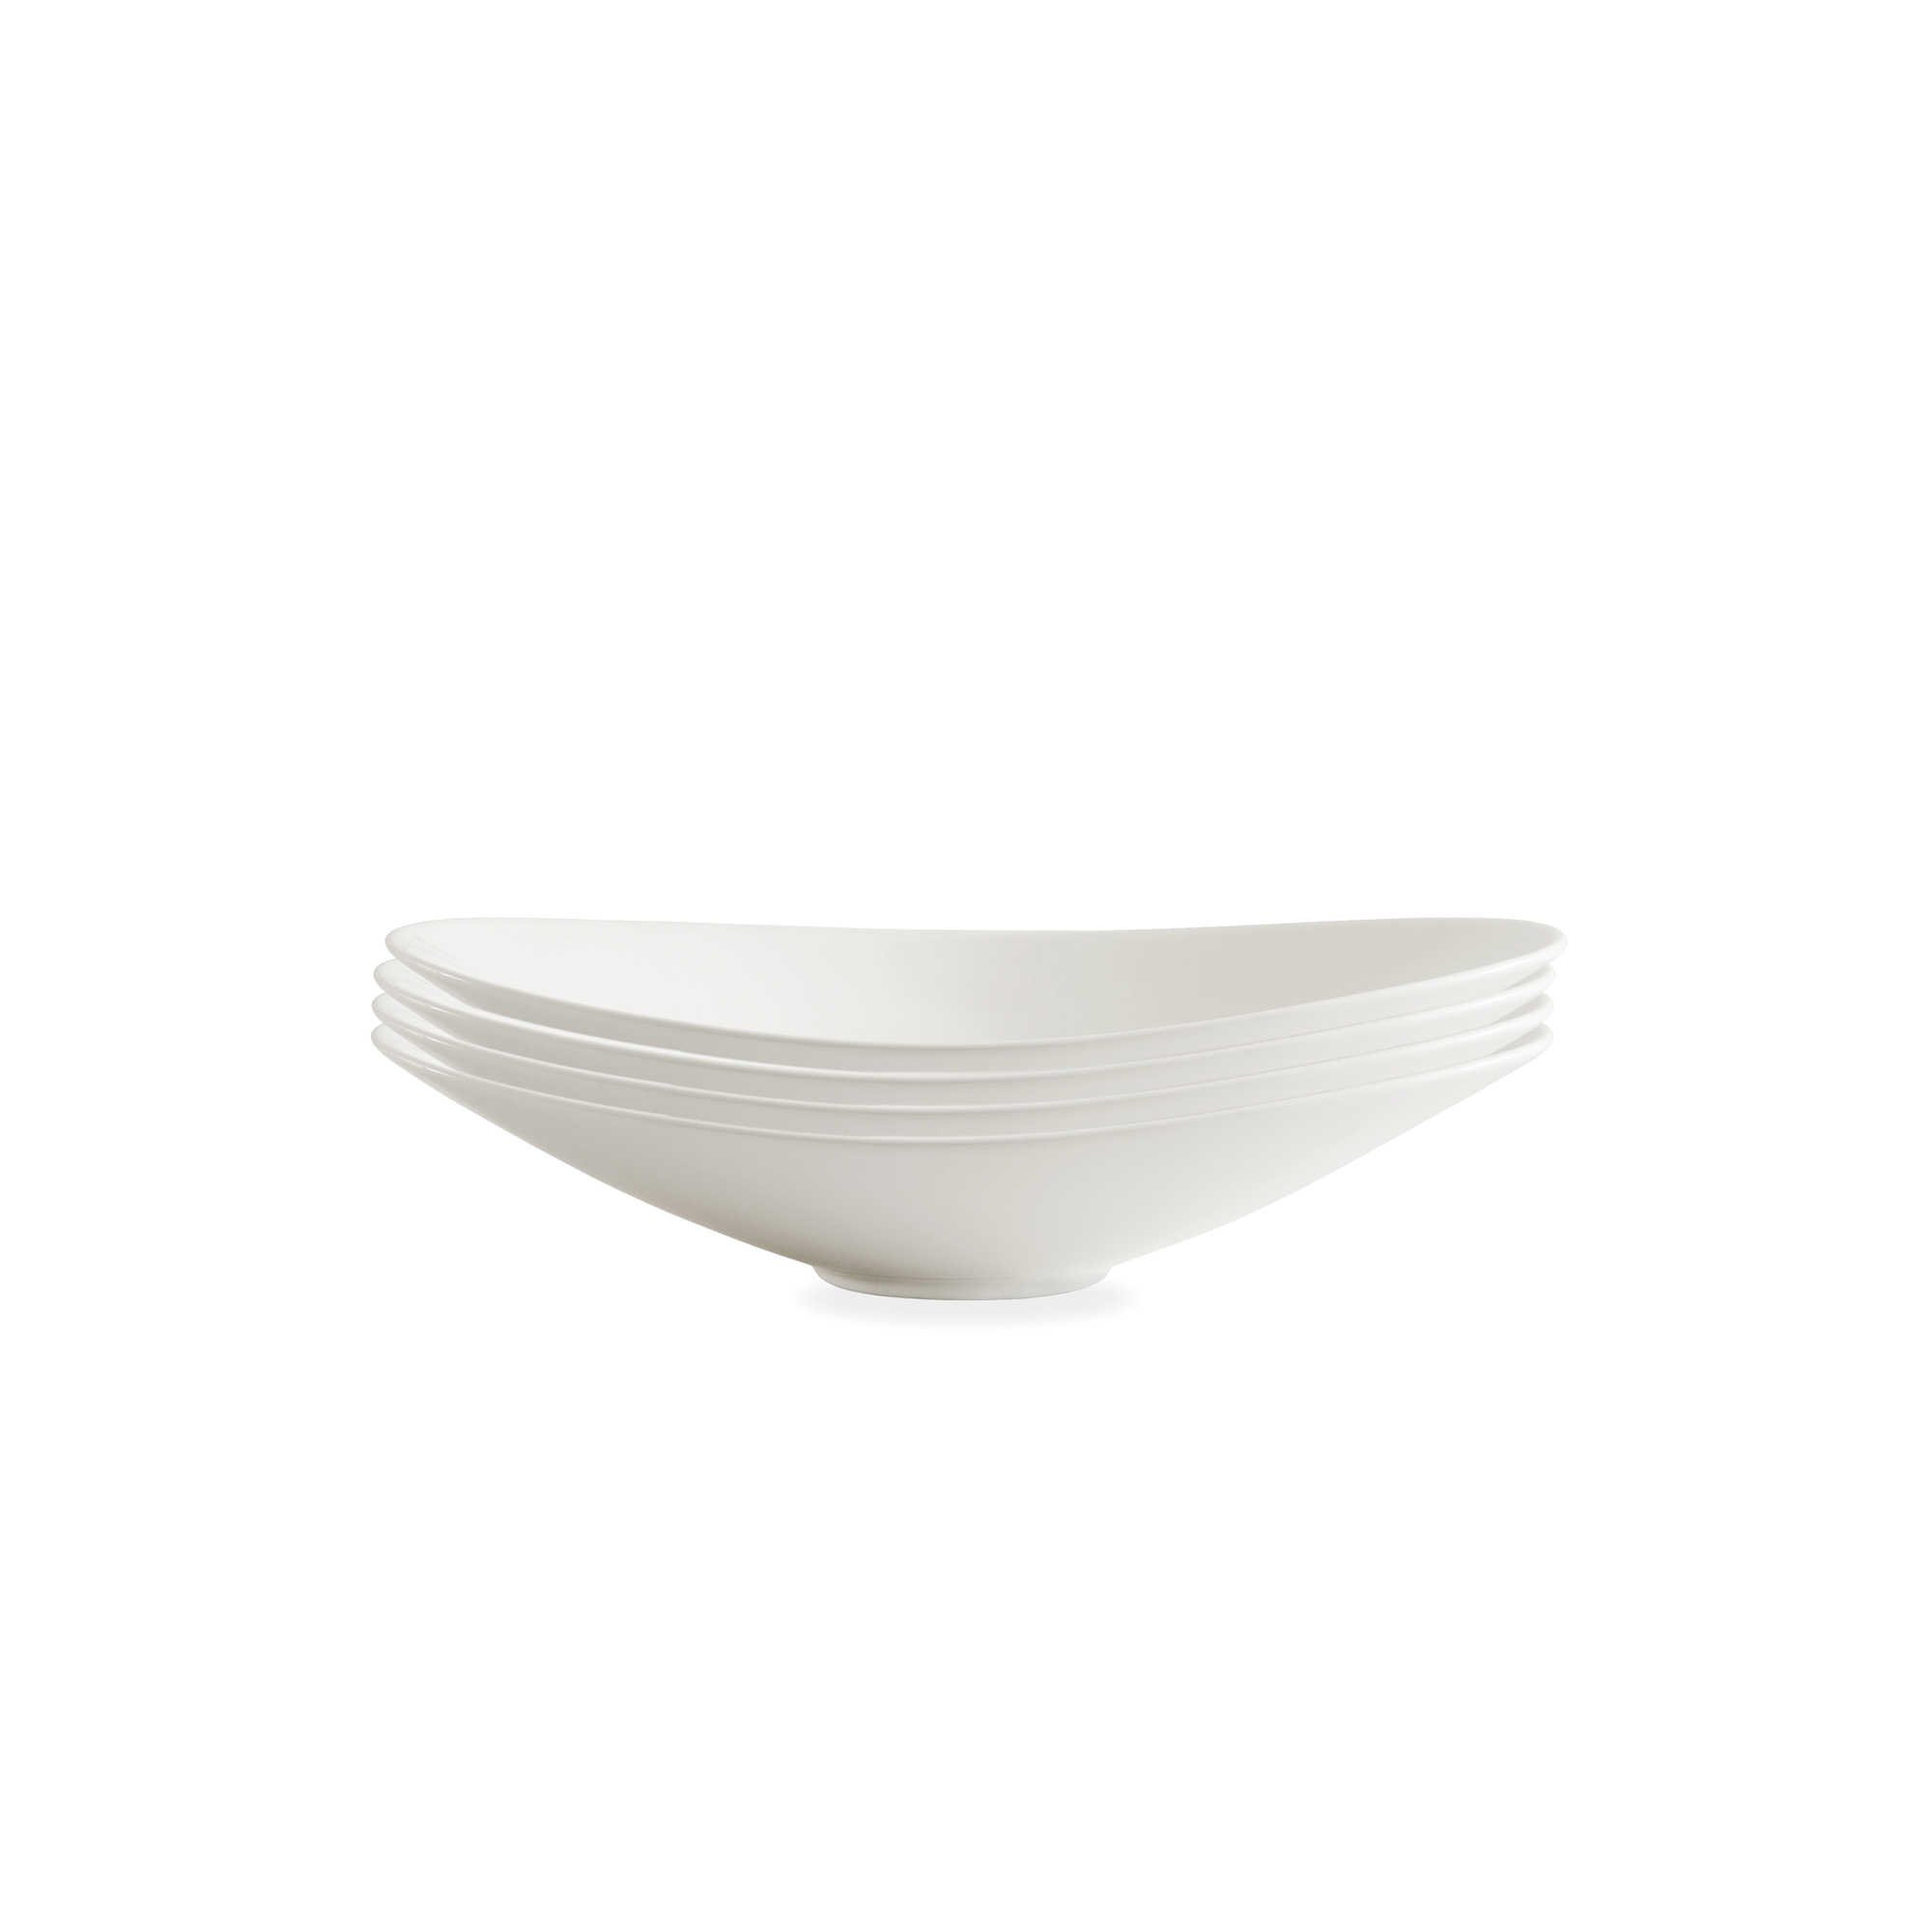 Fortessa Accentz 9.5-Inch Oval Coupe Bowls in White (Set of 4)   Measures 9.5'' L